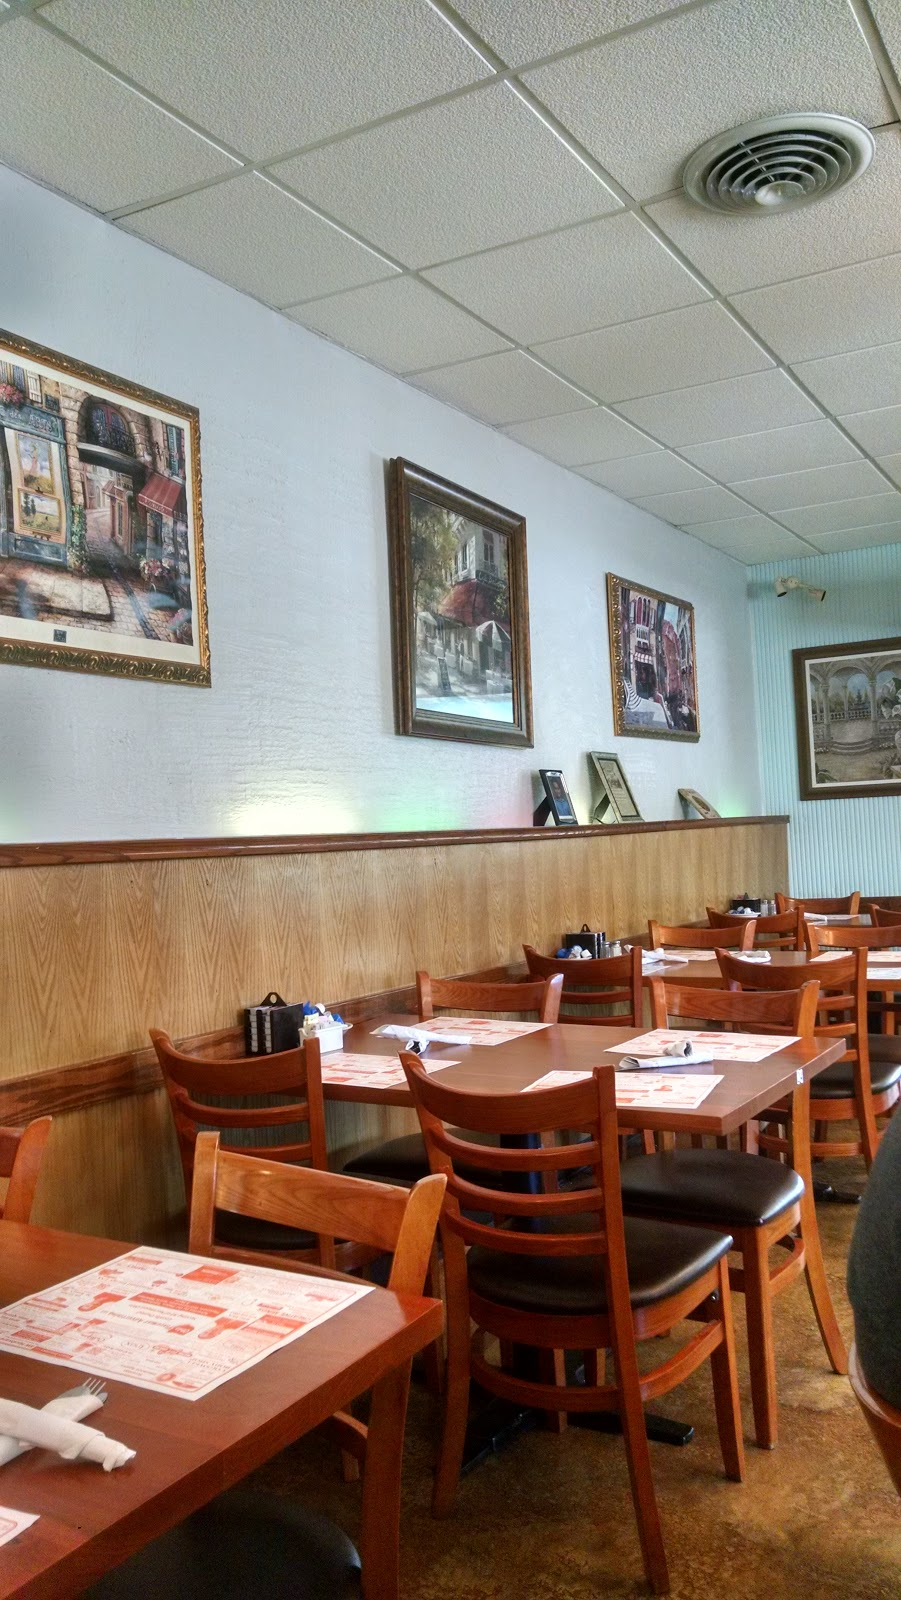 Lesters Diner Inc | restaurant | 233 S Main St, Bryan, OH 43506, USA